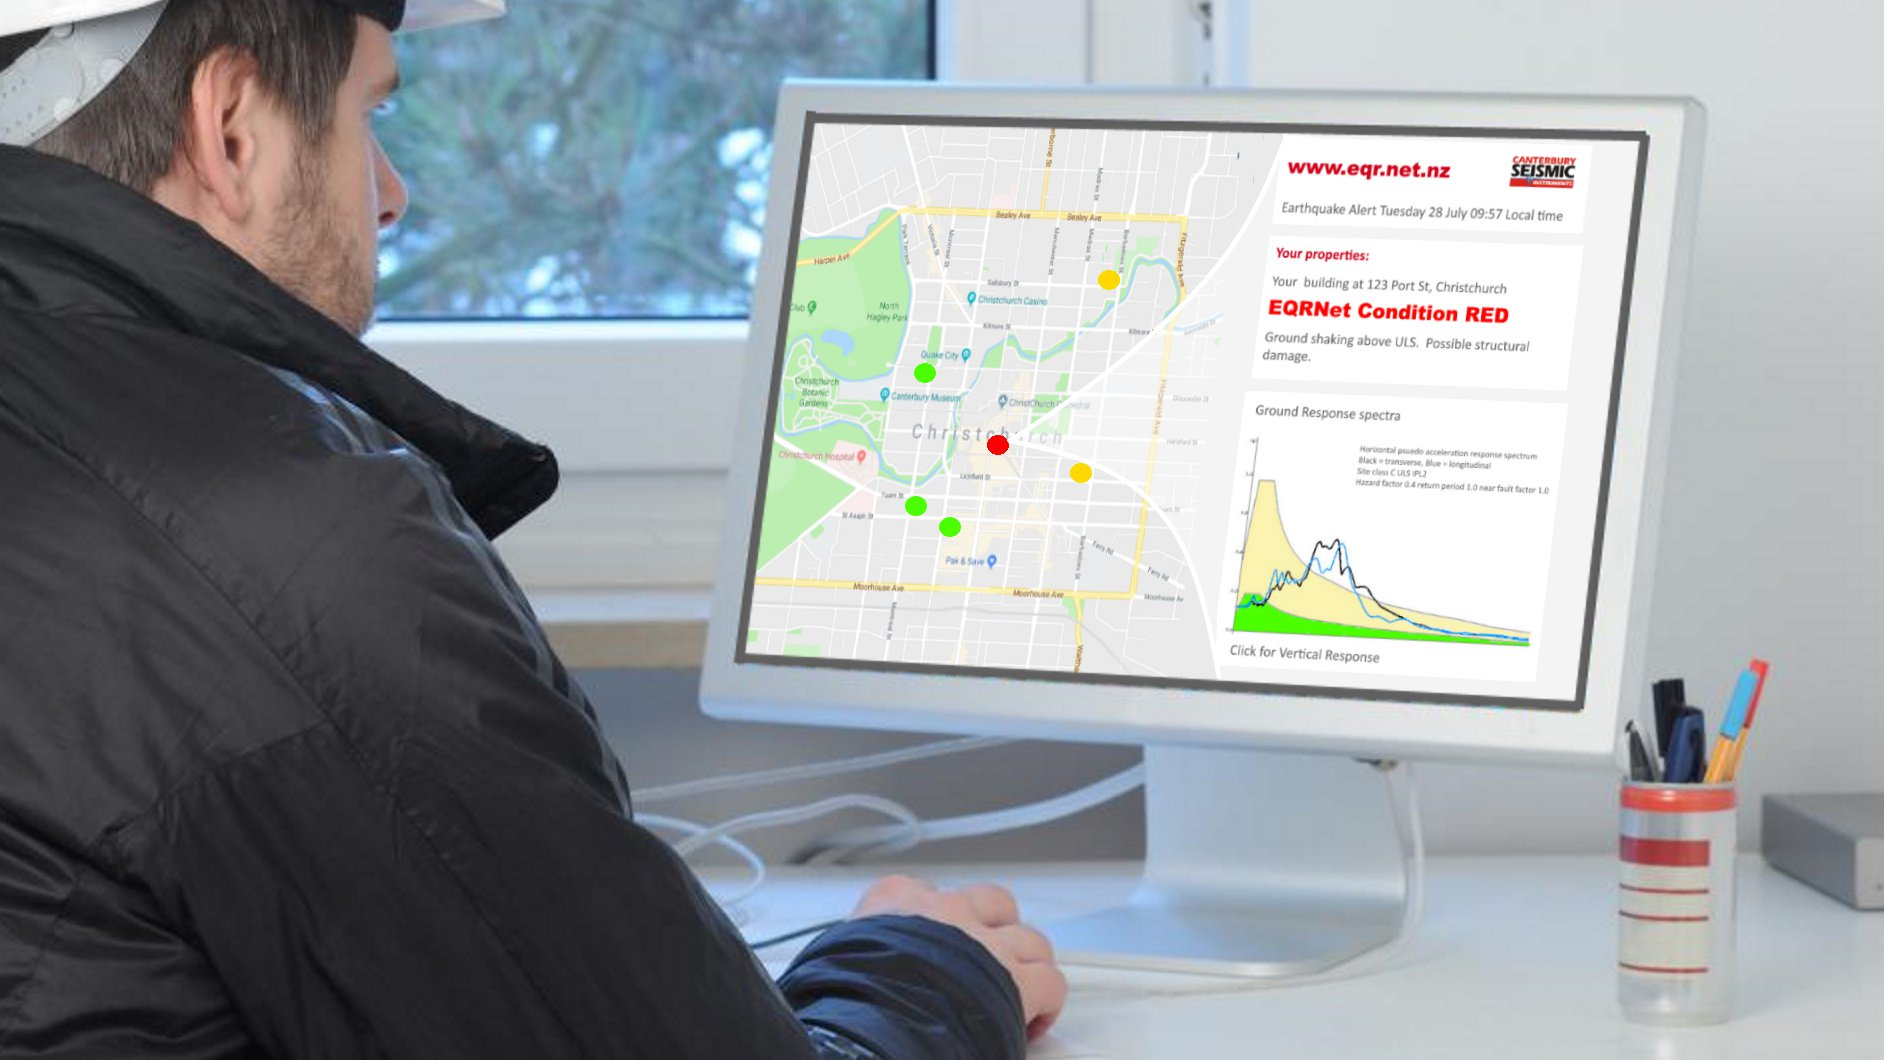 Council nets Smart City accolade with earthquake response